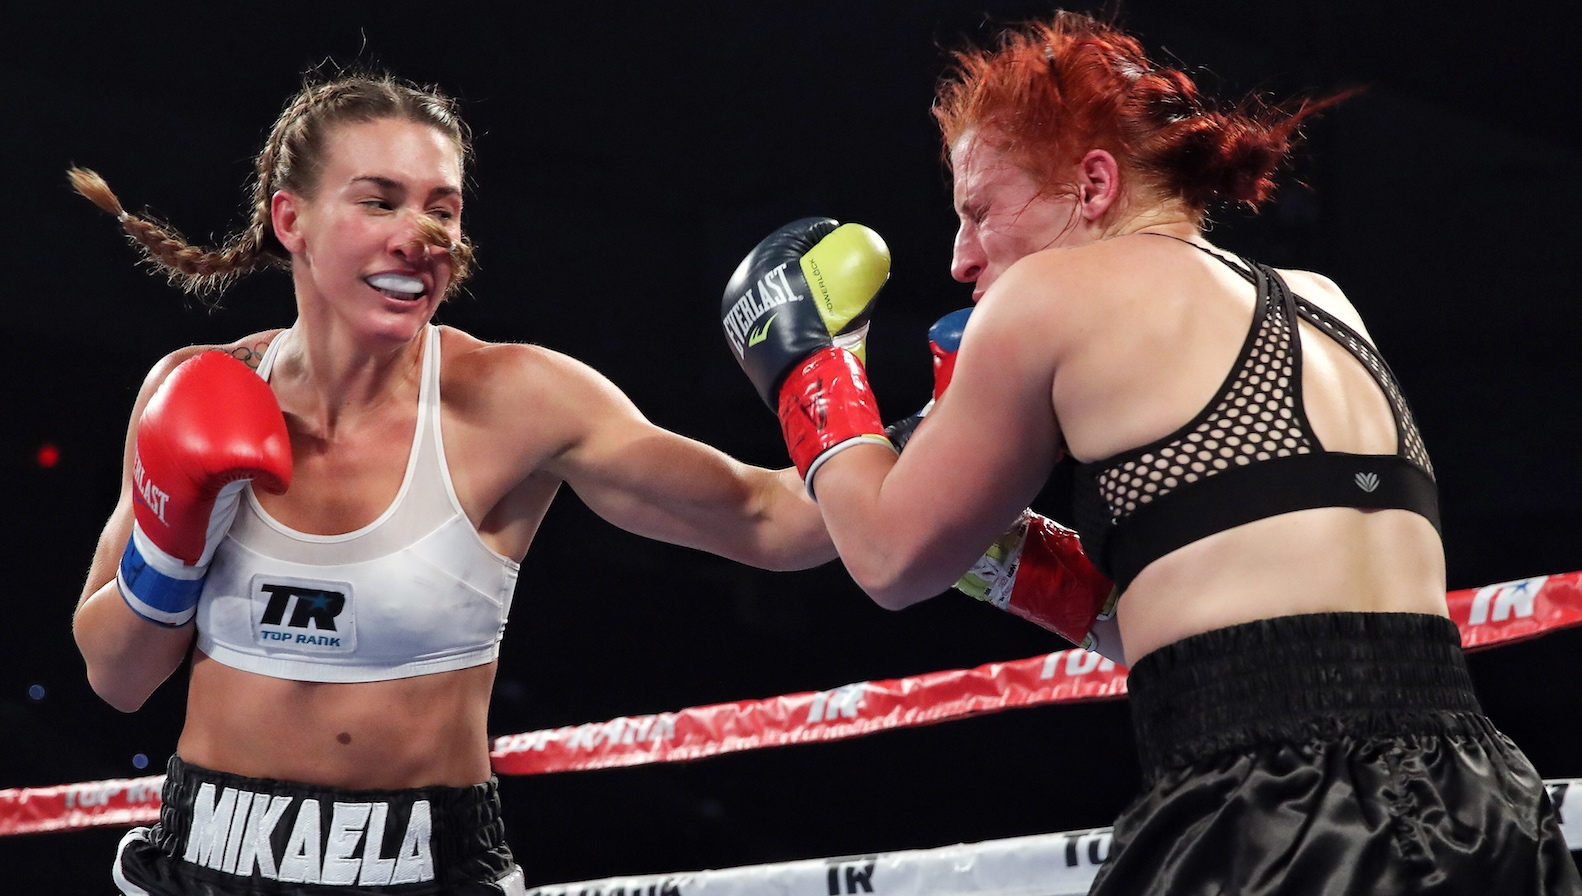 See also: List of female boxers and List of female mixed martial artists